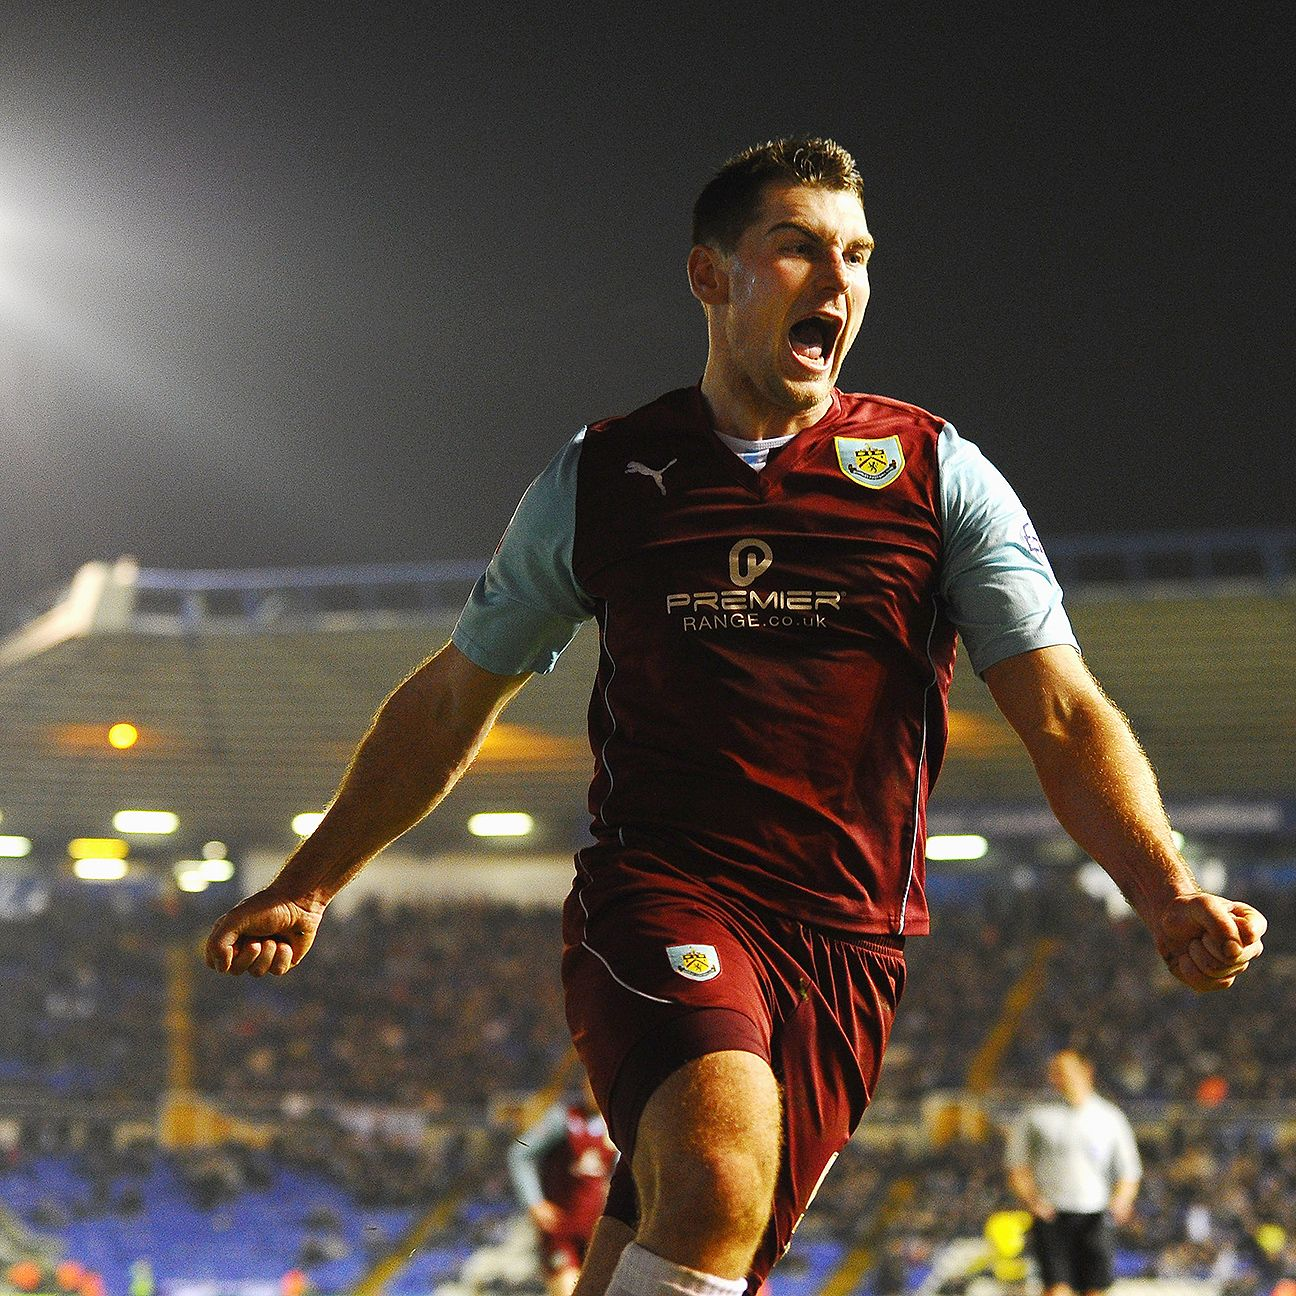 Sam Vokes' return to action could provide a big emotional lift for Burnley versus Liverpool.